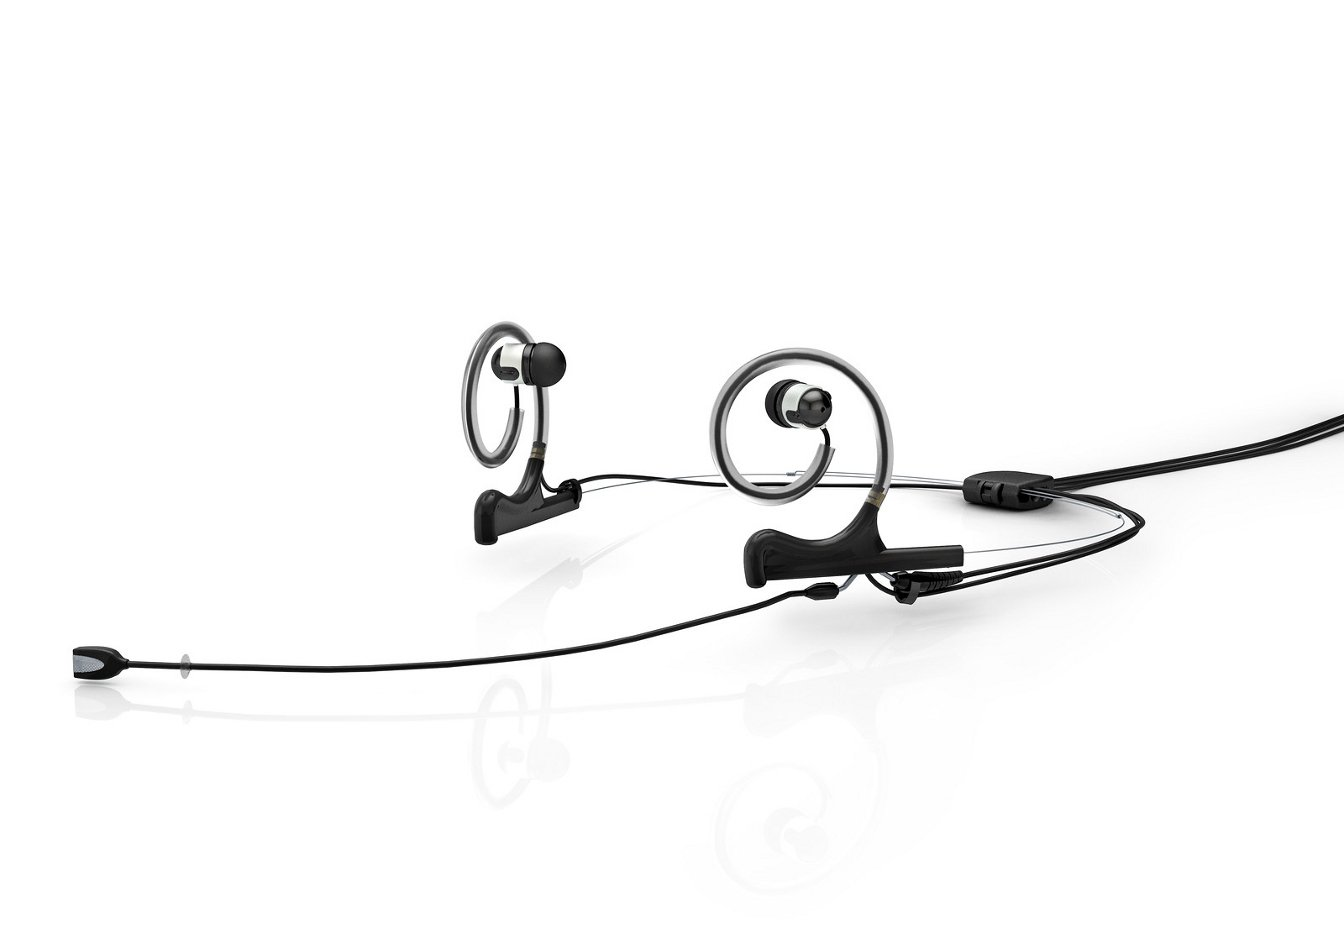 Dual-Ear Mount, Single In-Ear, w/ Mic Cable for Earhook Slide